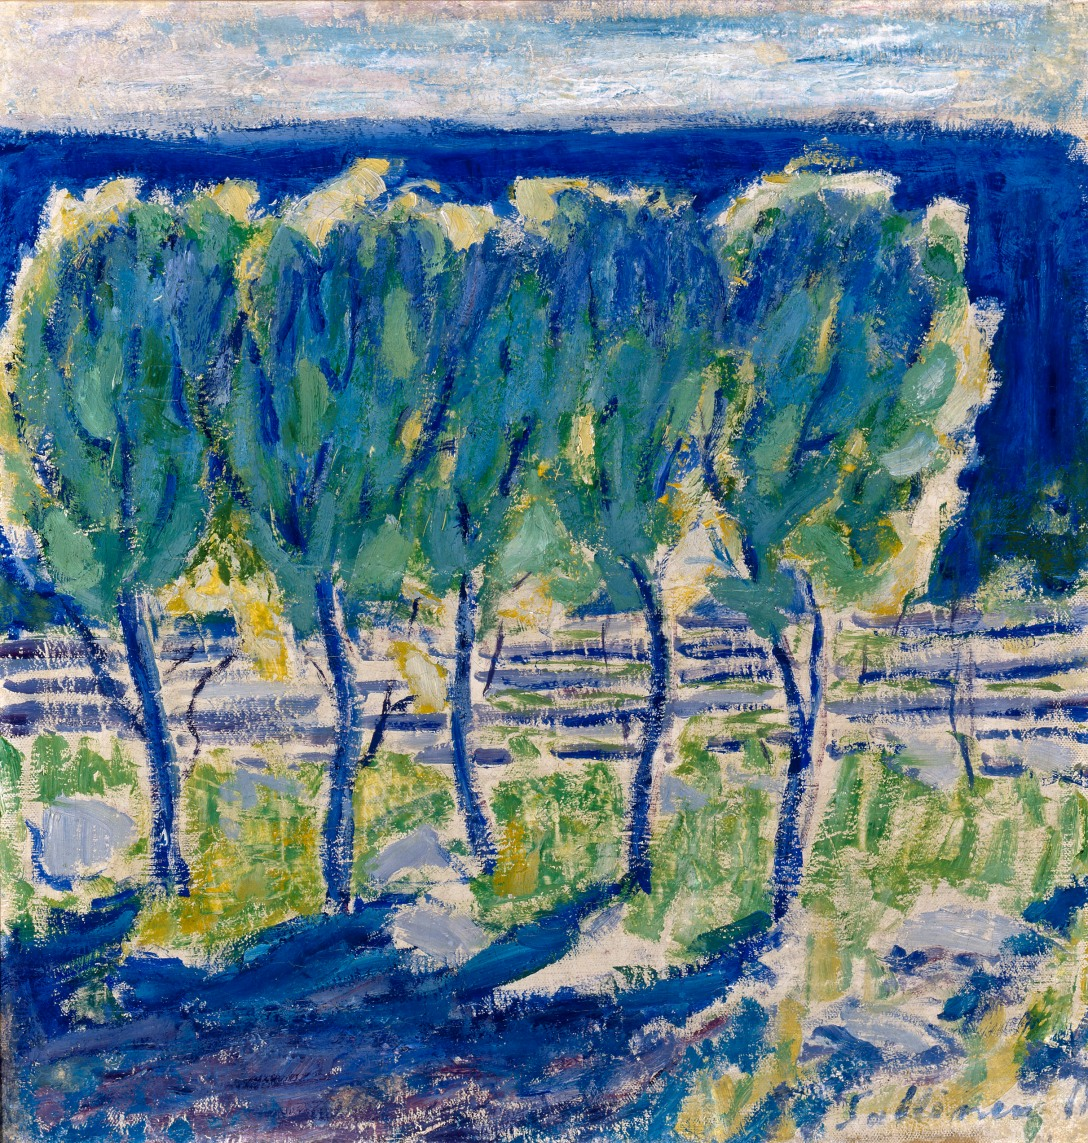 Tyko Sallinen, Leppiä keväällä, Alder Trees in the spring, 1911, Courtesy of HAM, photo Hanna Riikonen.